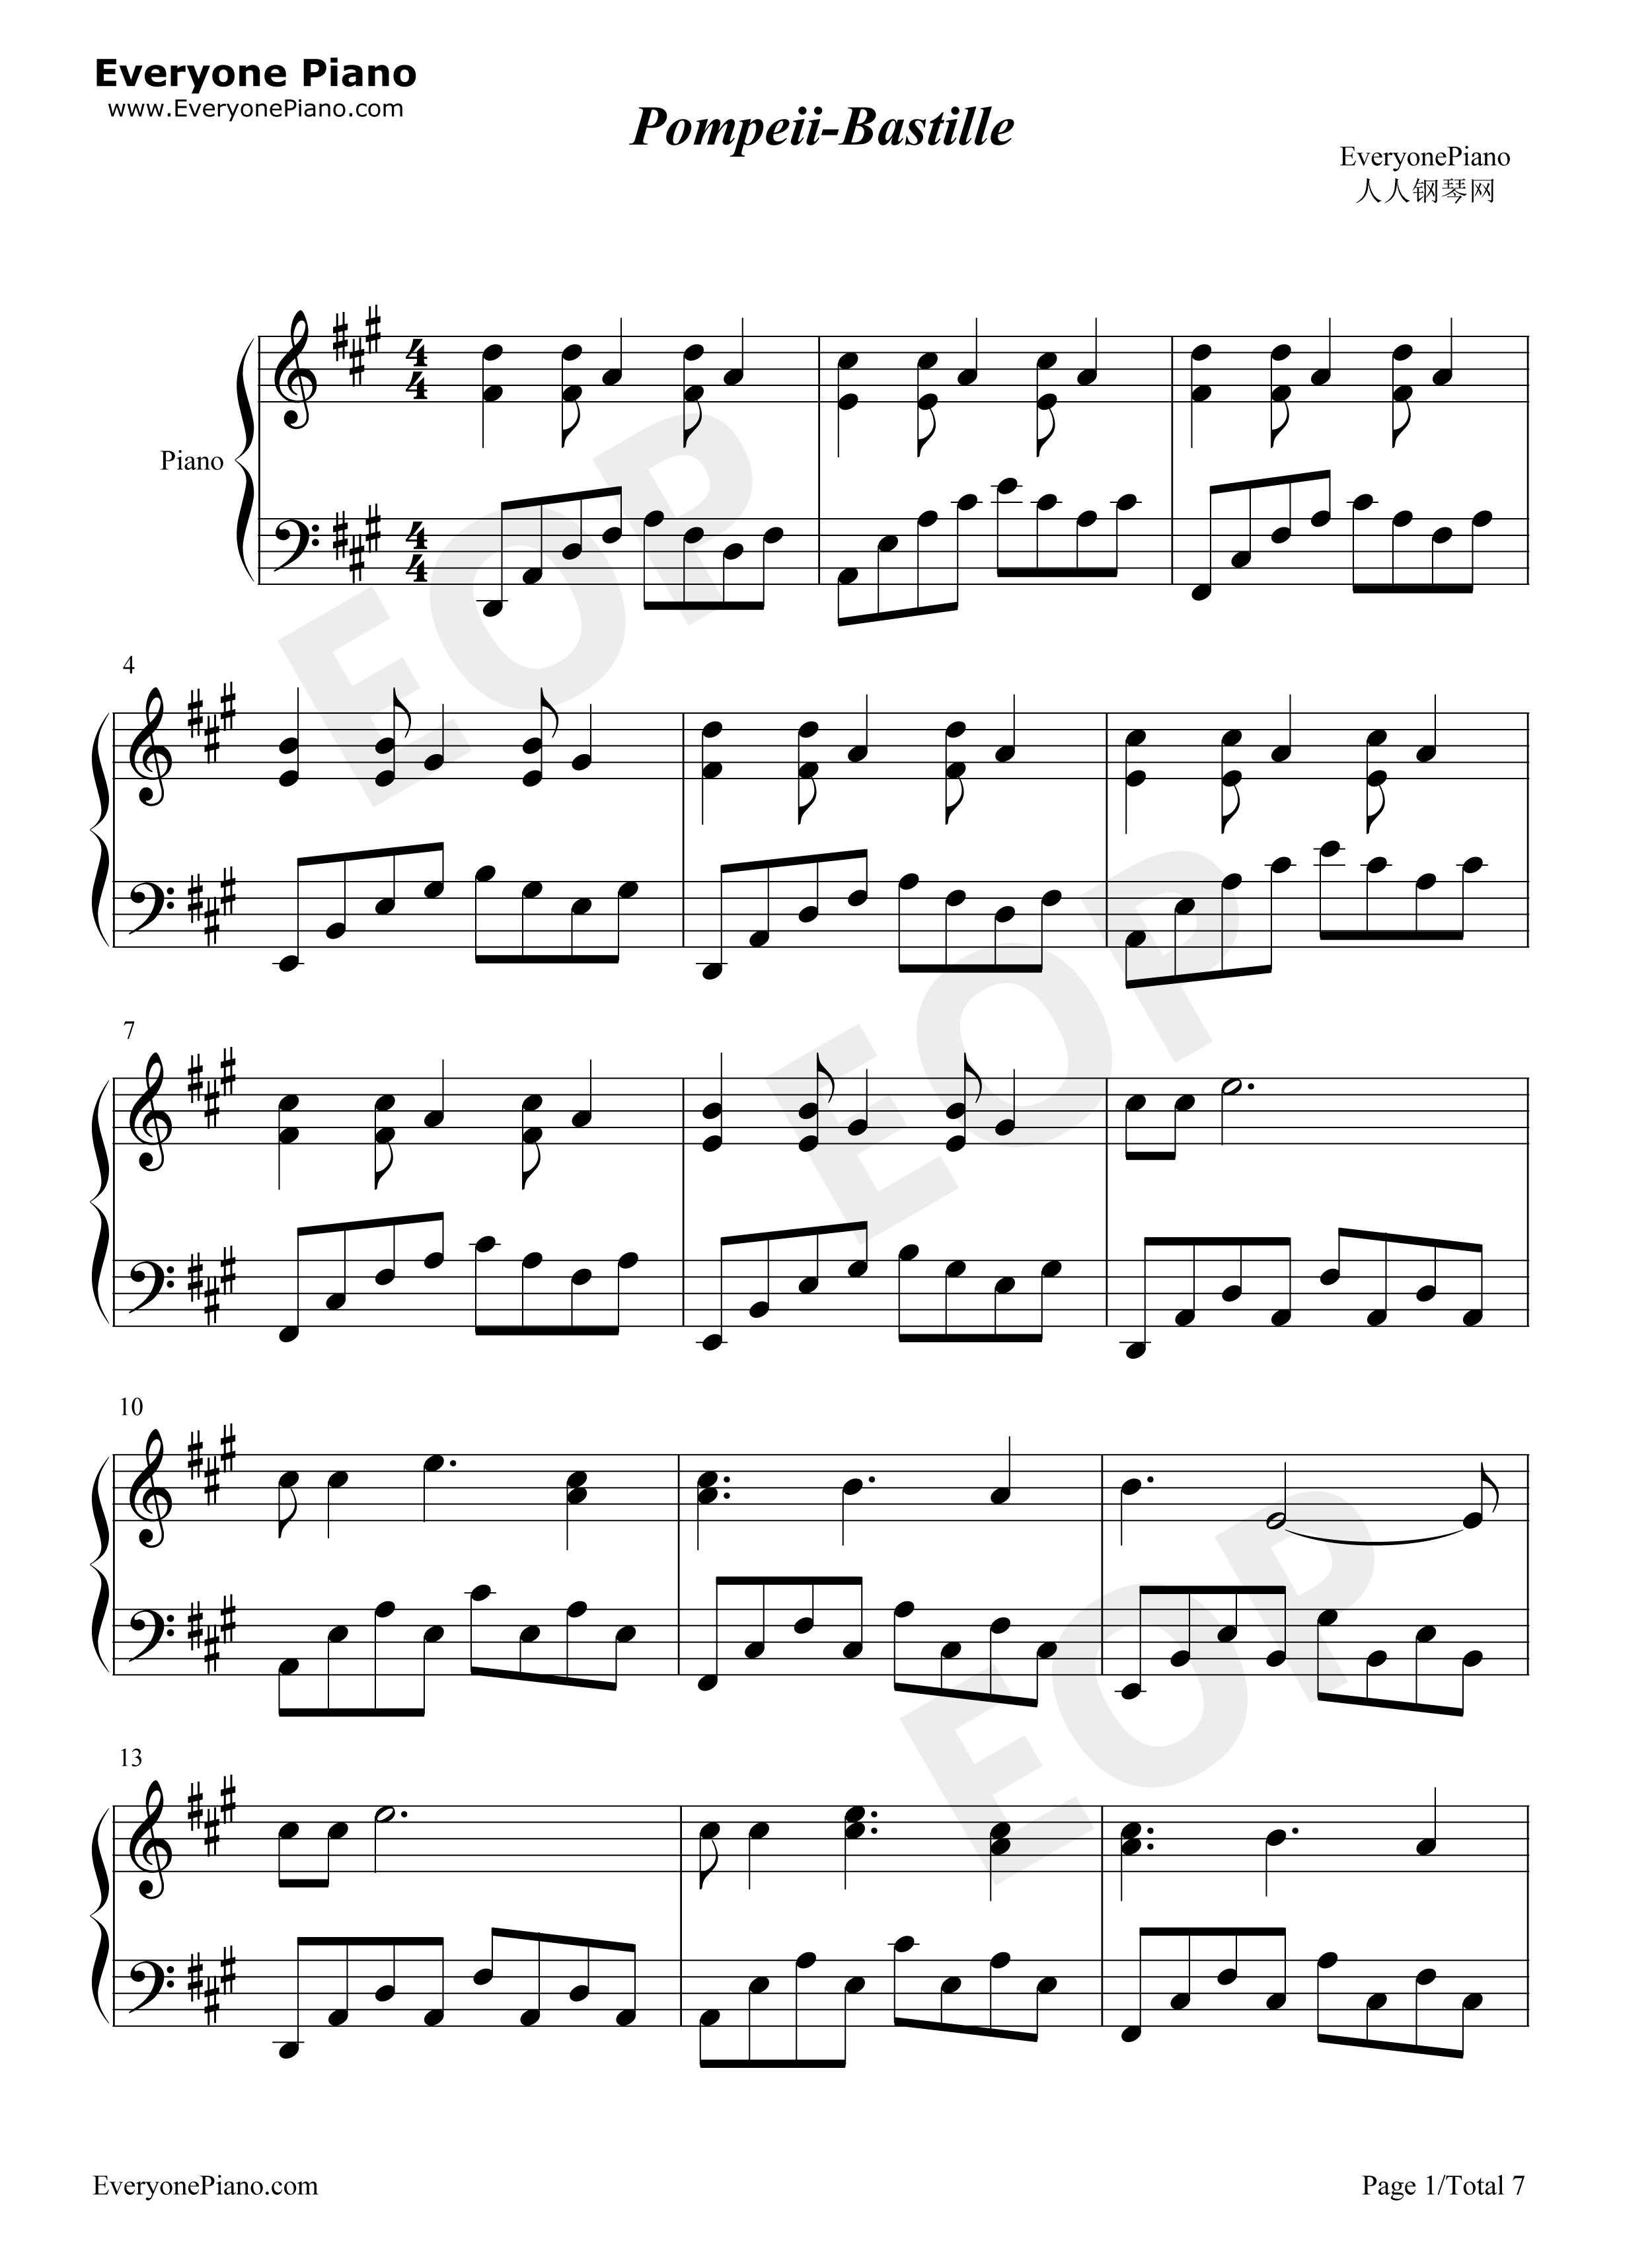 Pompeii full version bastille free piano sheet music piano chords pompeii full version bastille stave preview 1 hexwebz Image collections